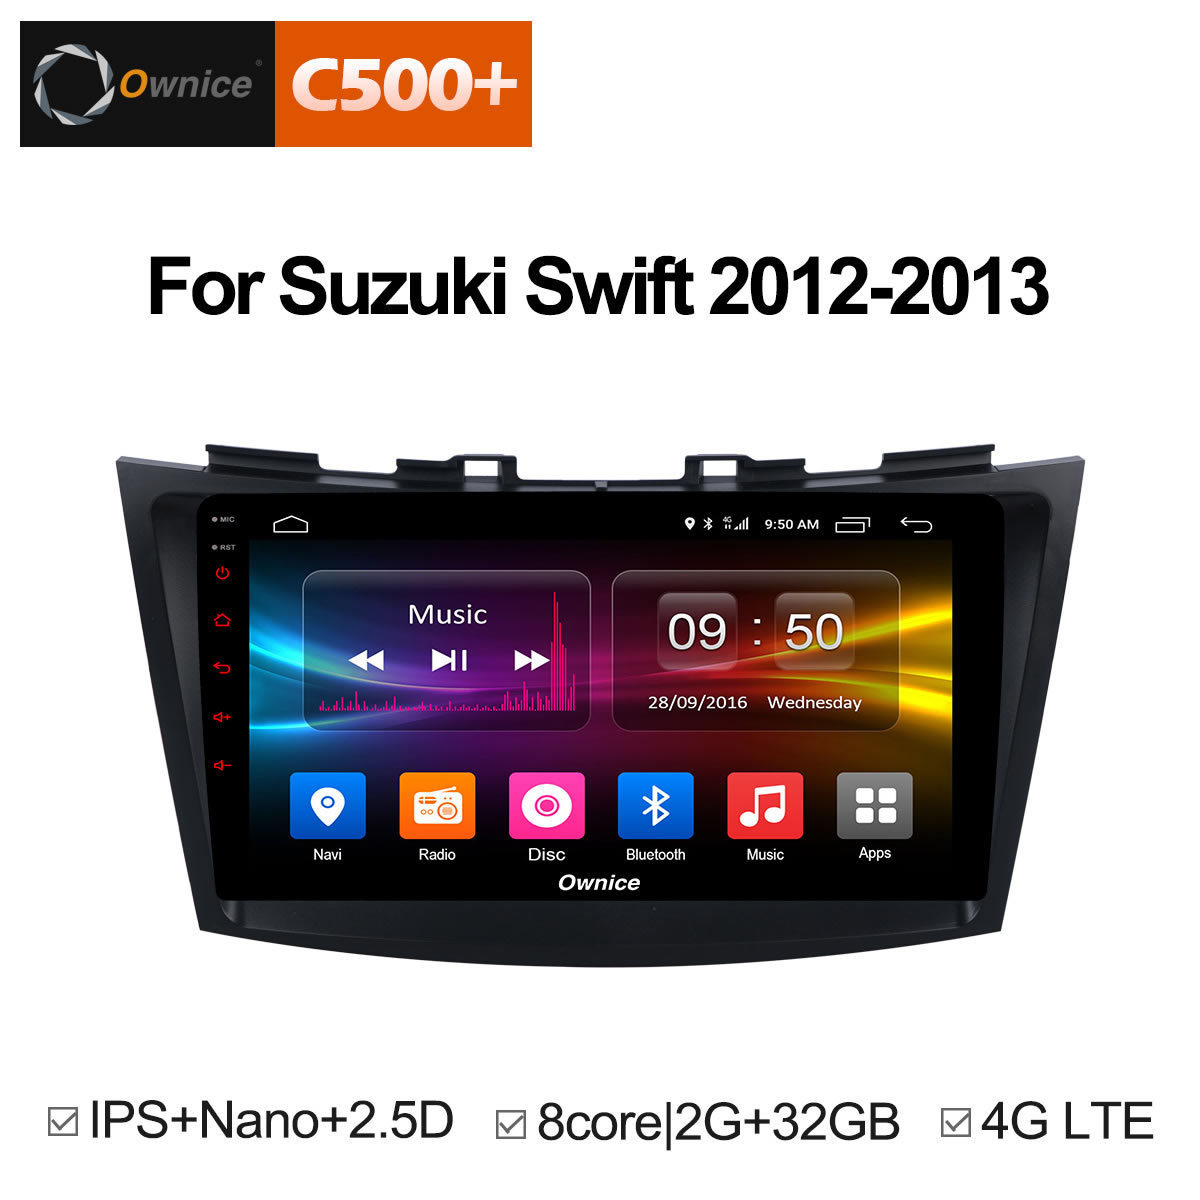 Ownice Multimedia Android 8.1 Player For SUZUKI SWIFT 2012 2013 Car Dvd GPS Navigation System Radio Audio Headunit Stereo DAB PC